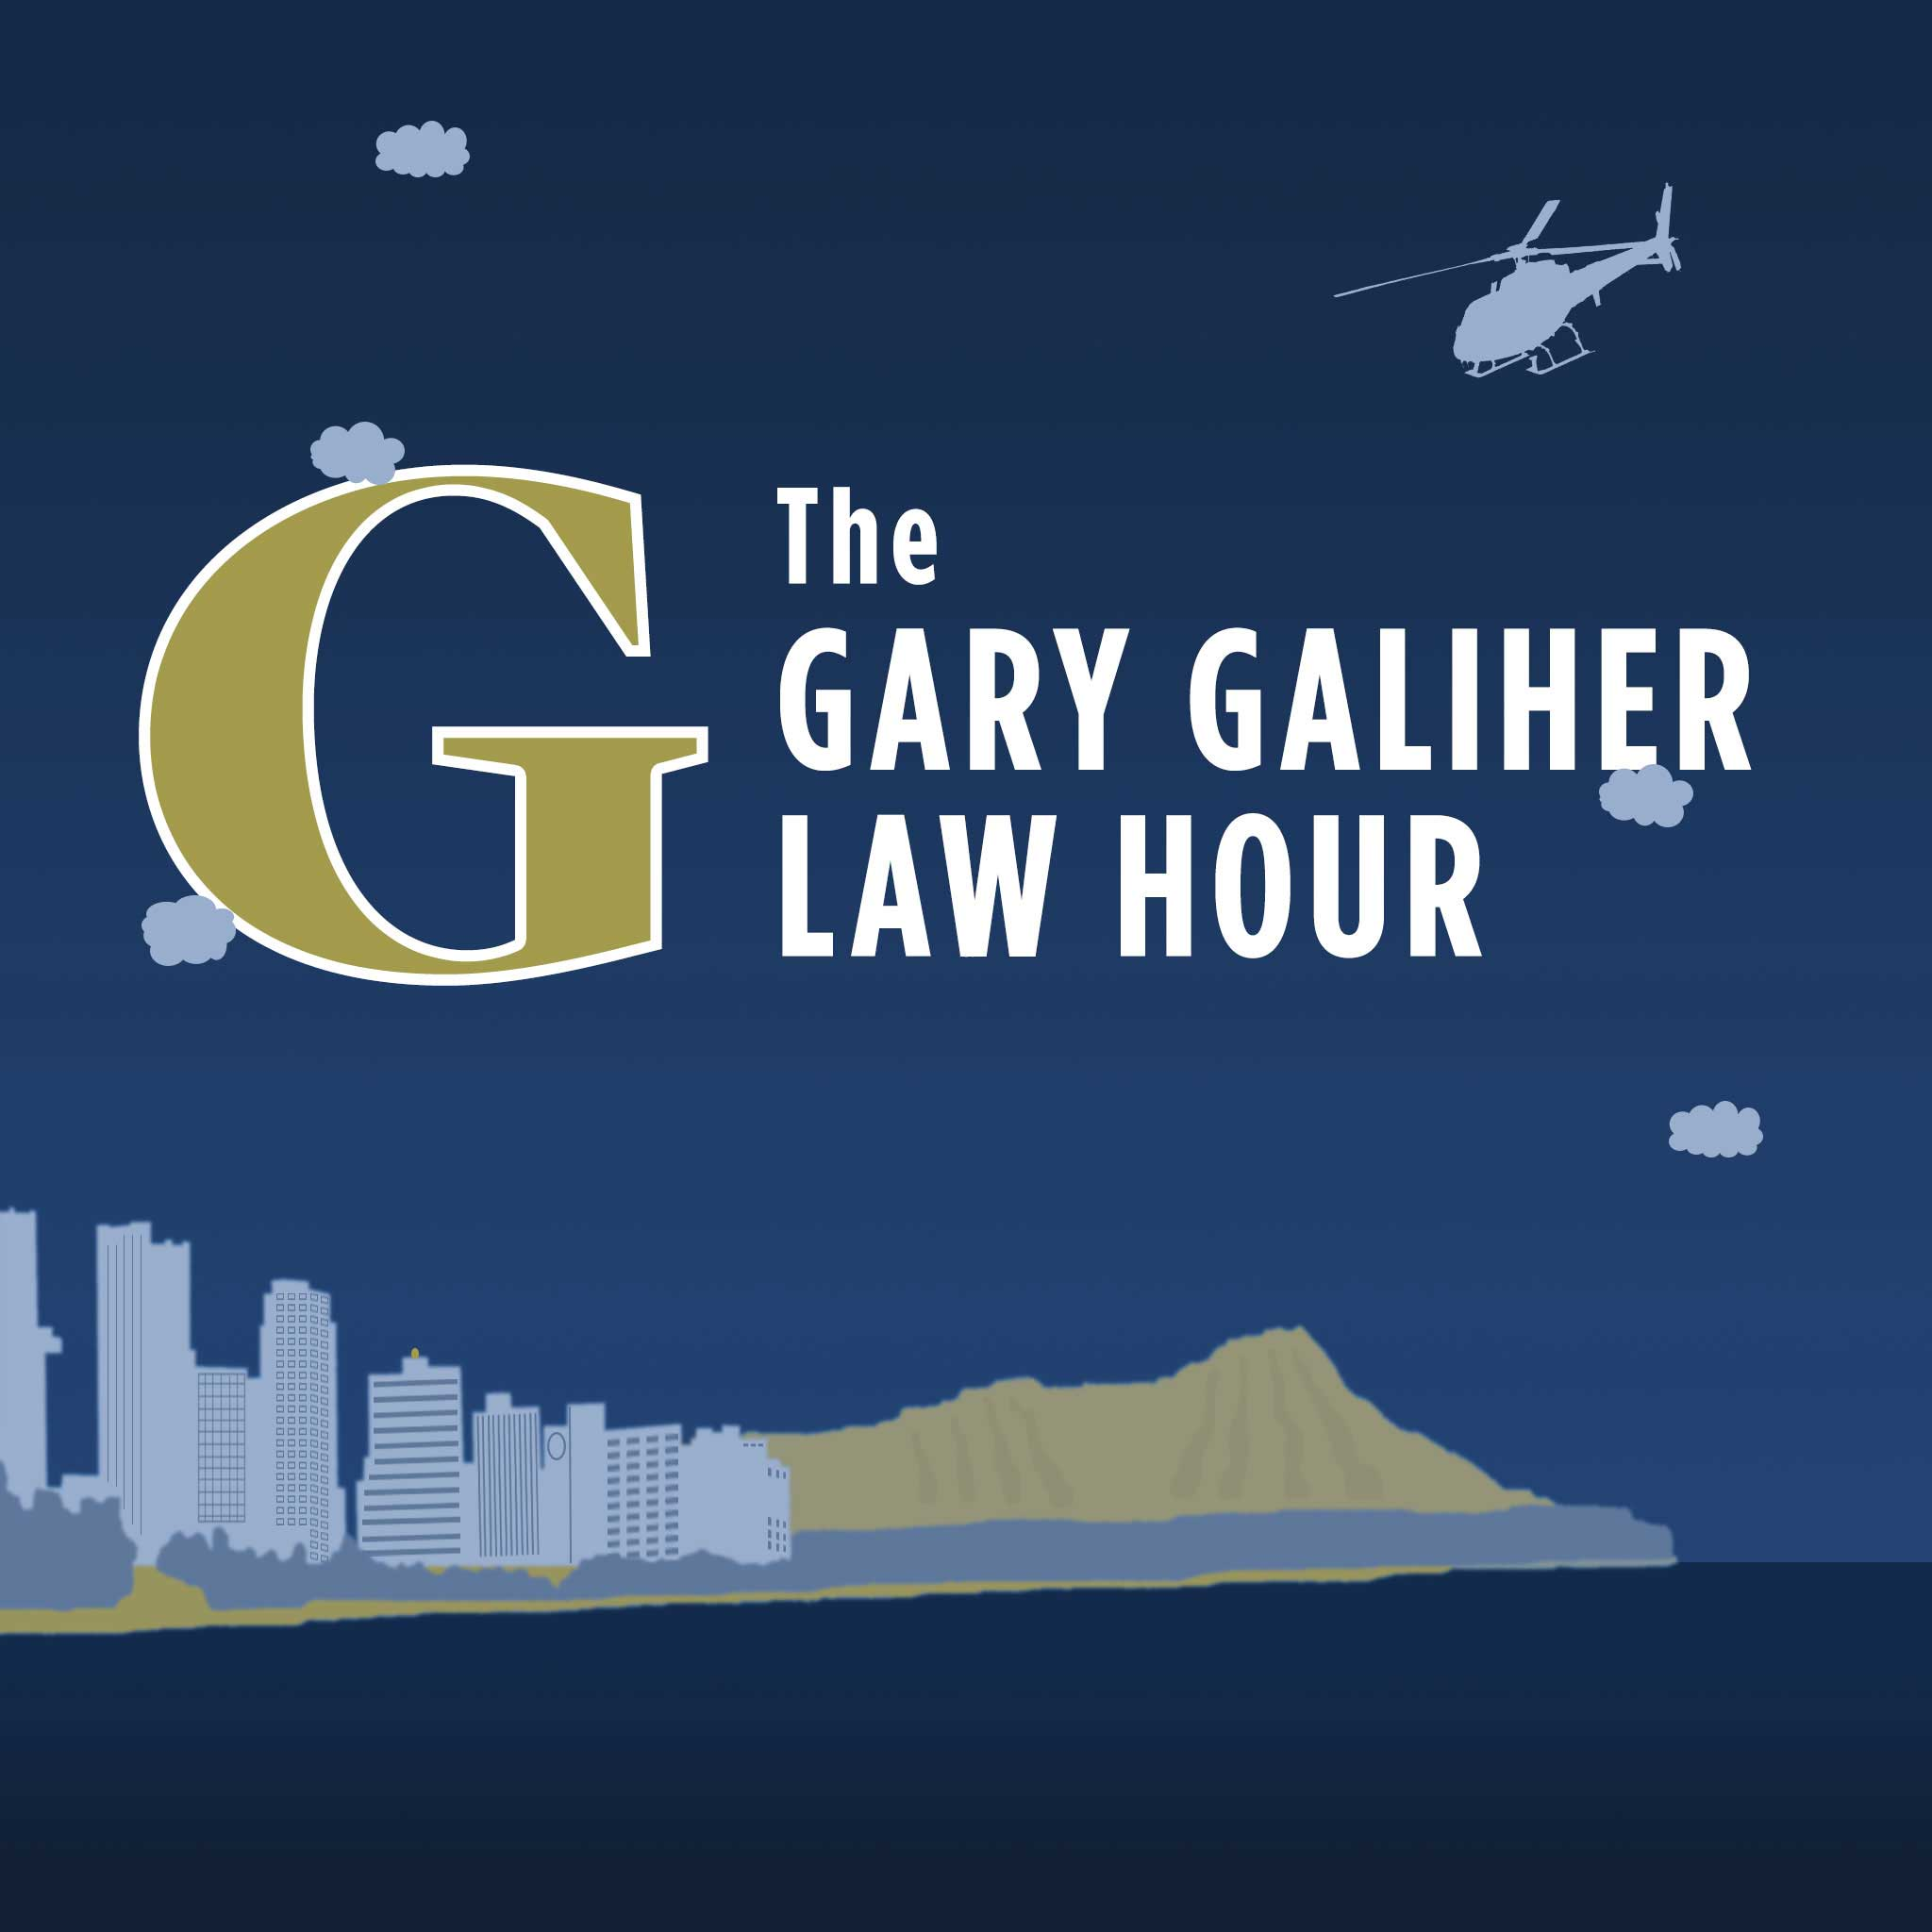 The Gary Galiher Law Hour